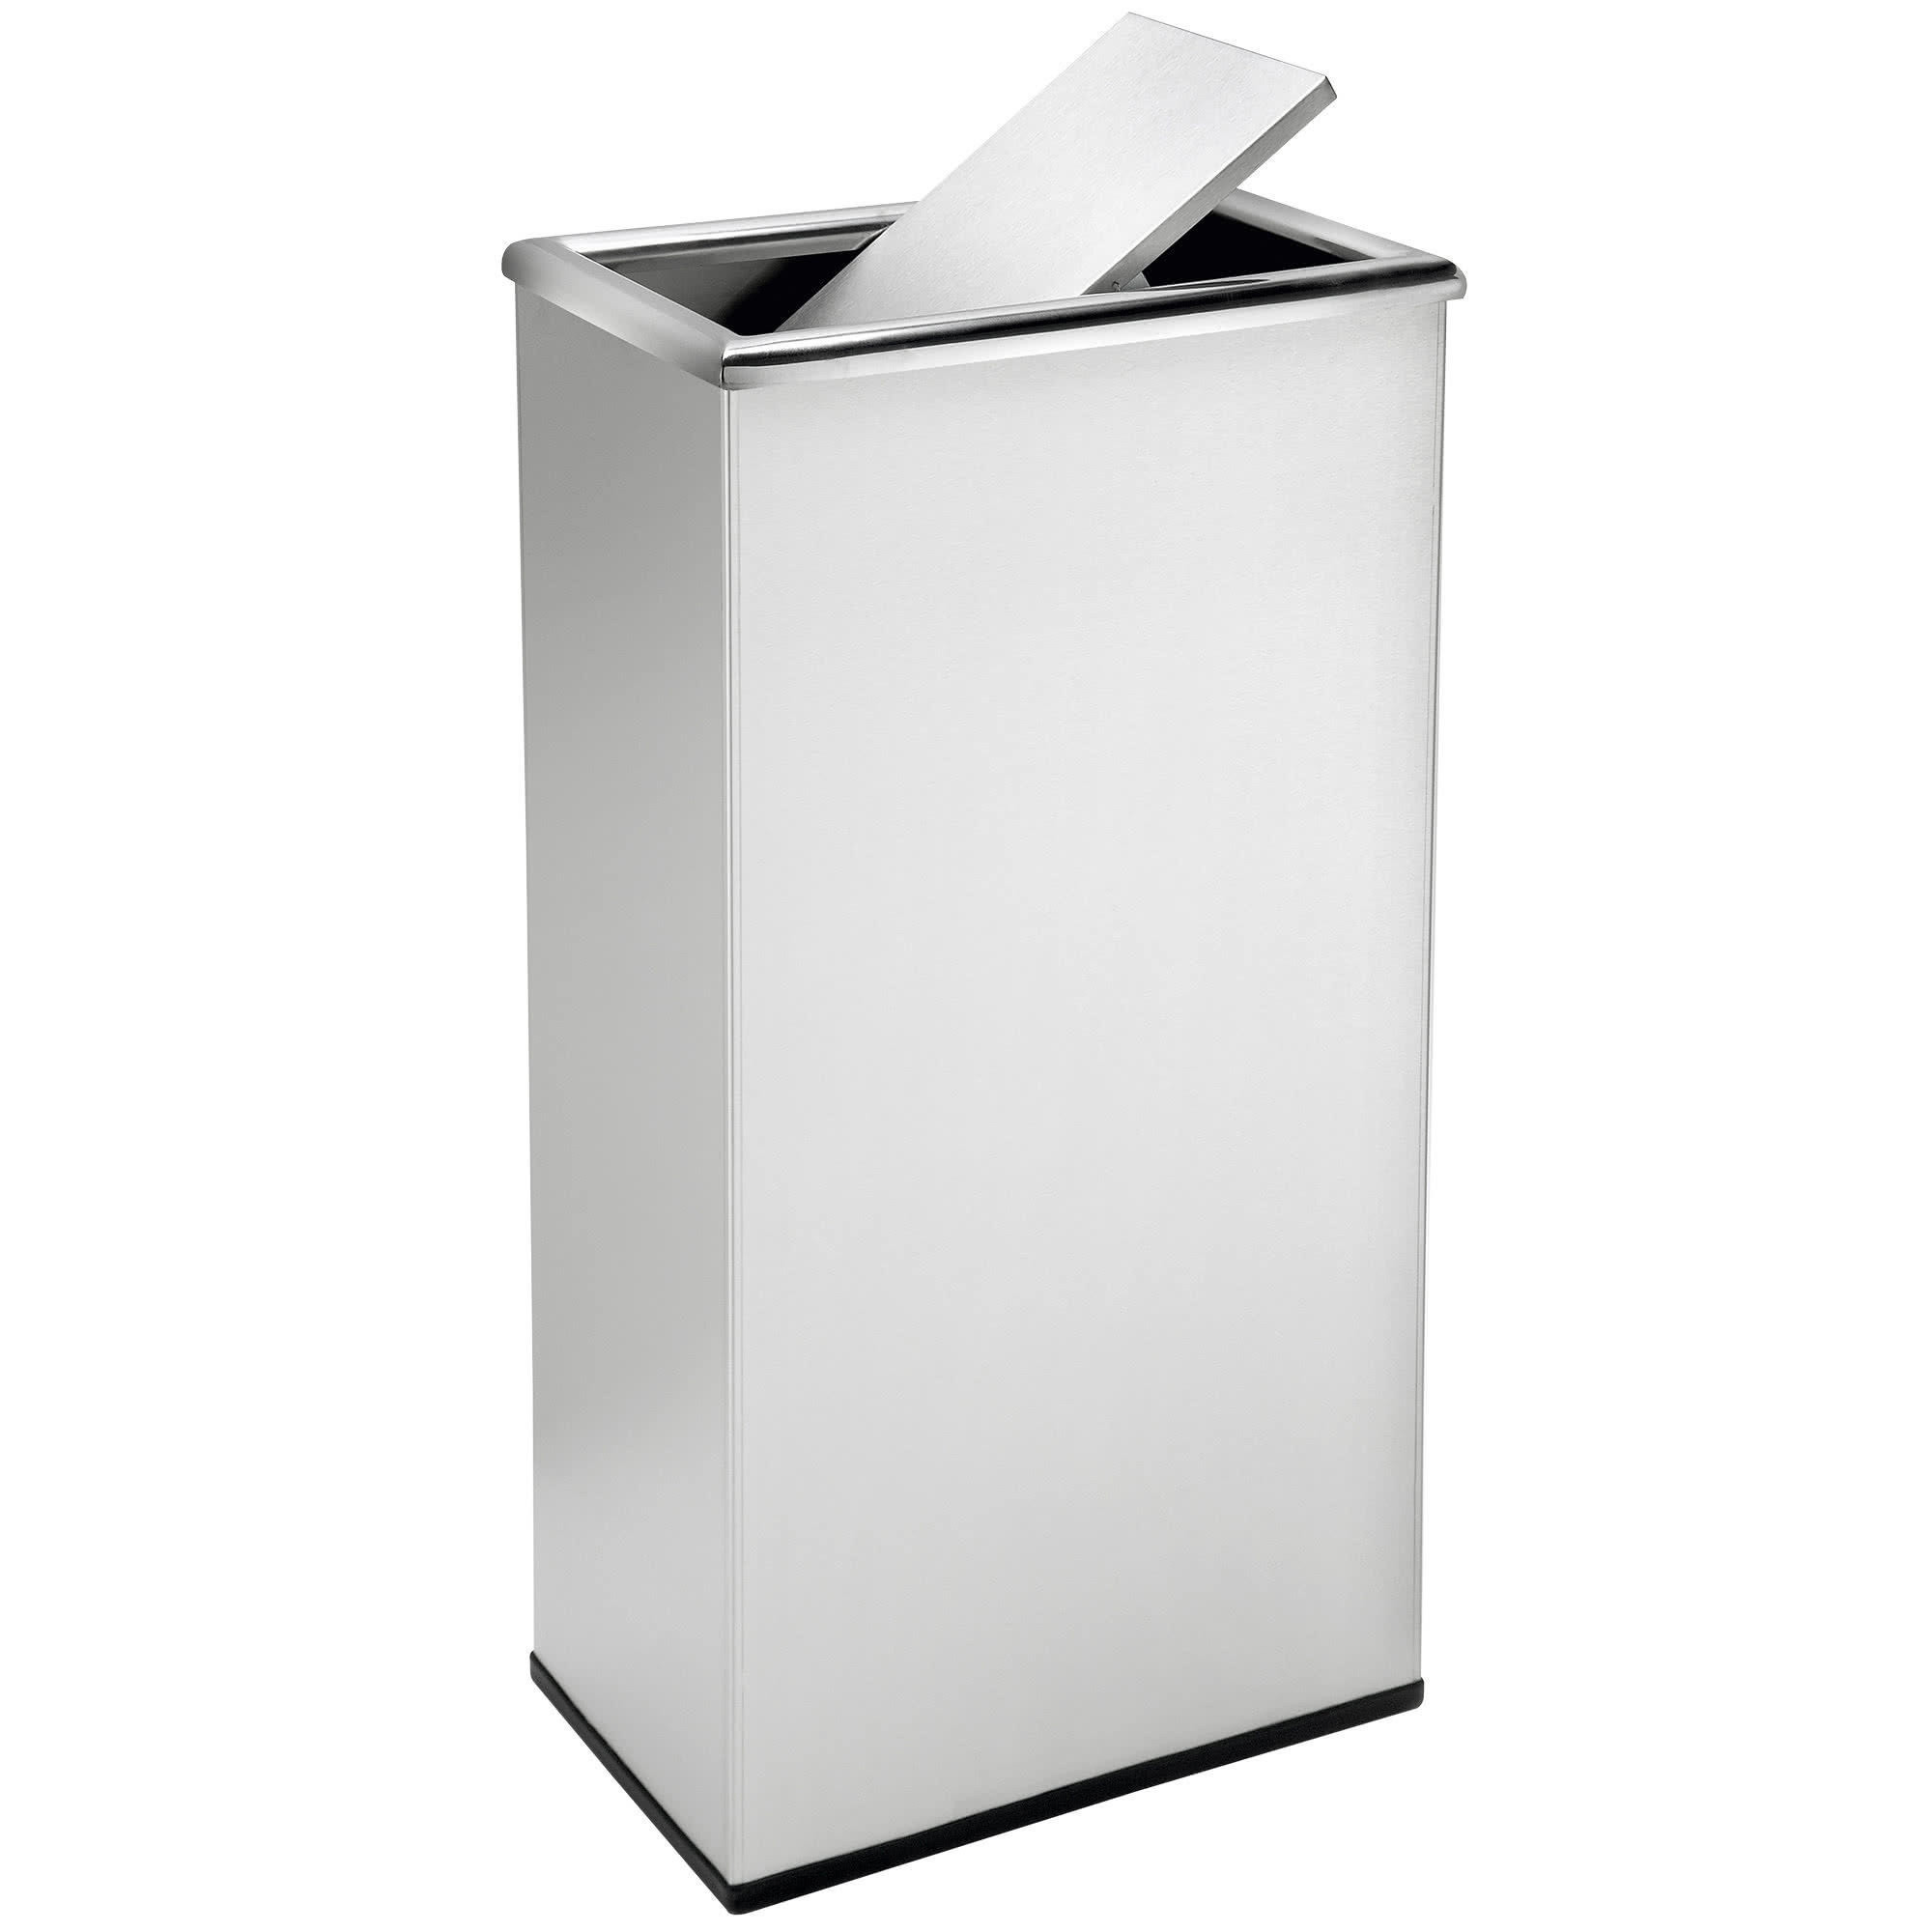 The best trash cans, according to experts - Chicago Tribune